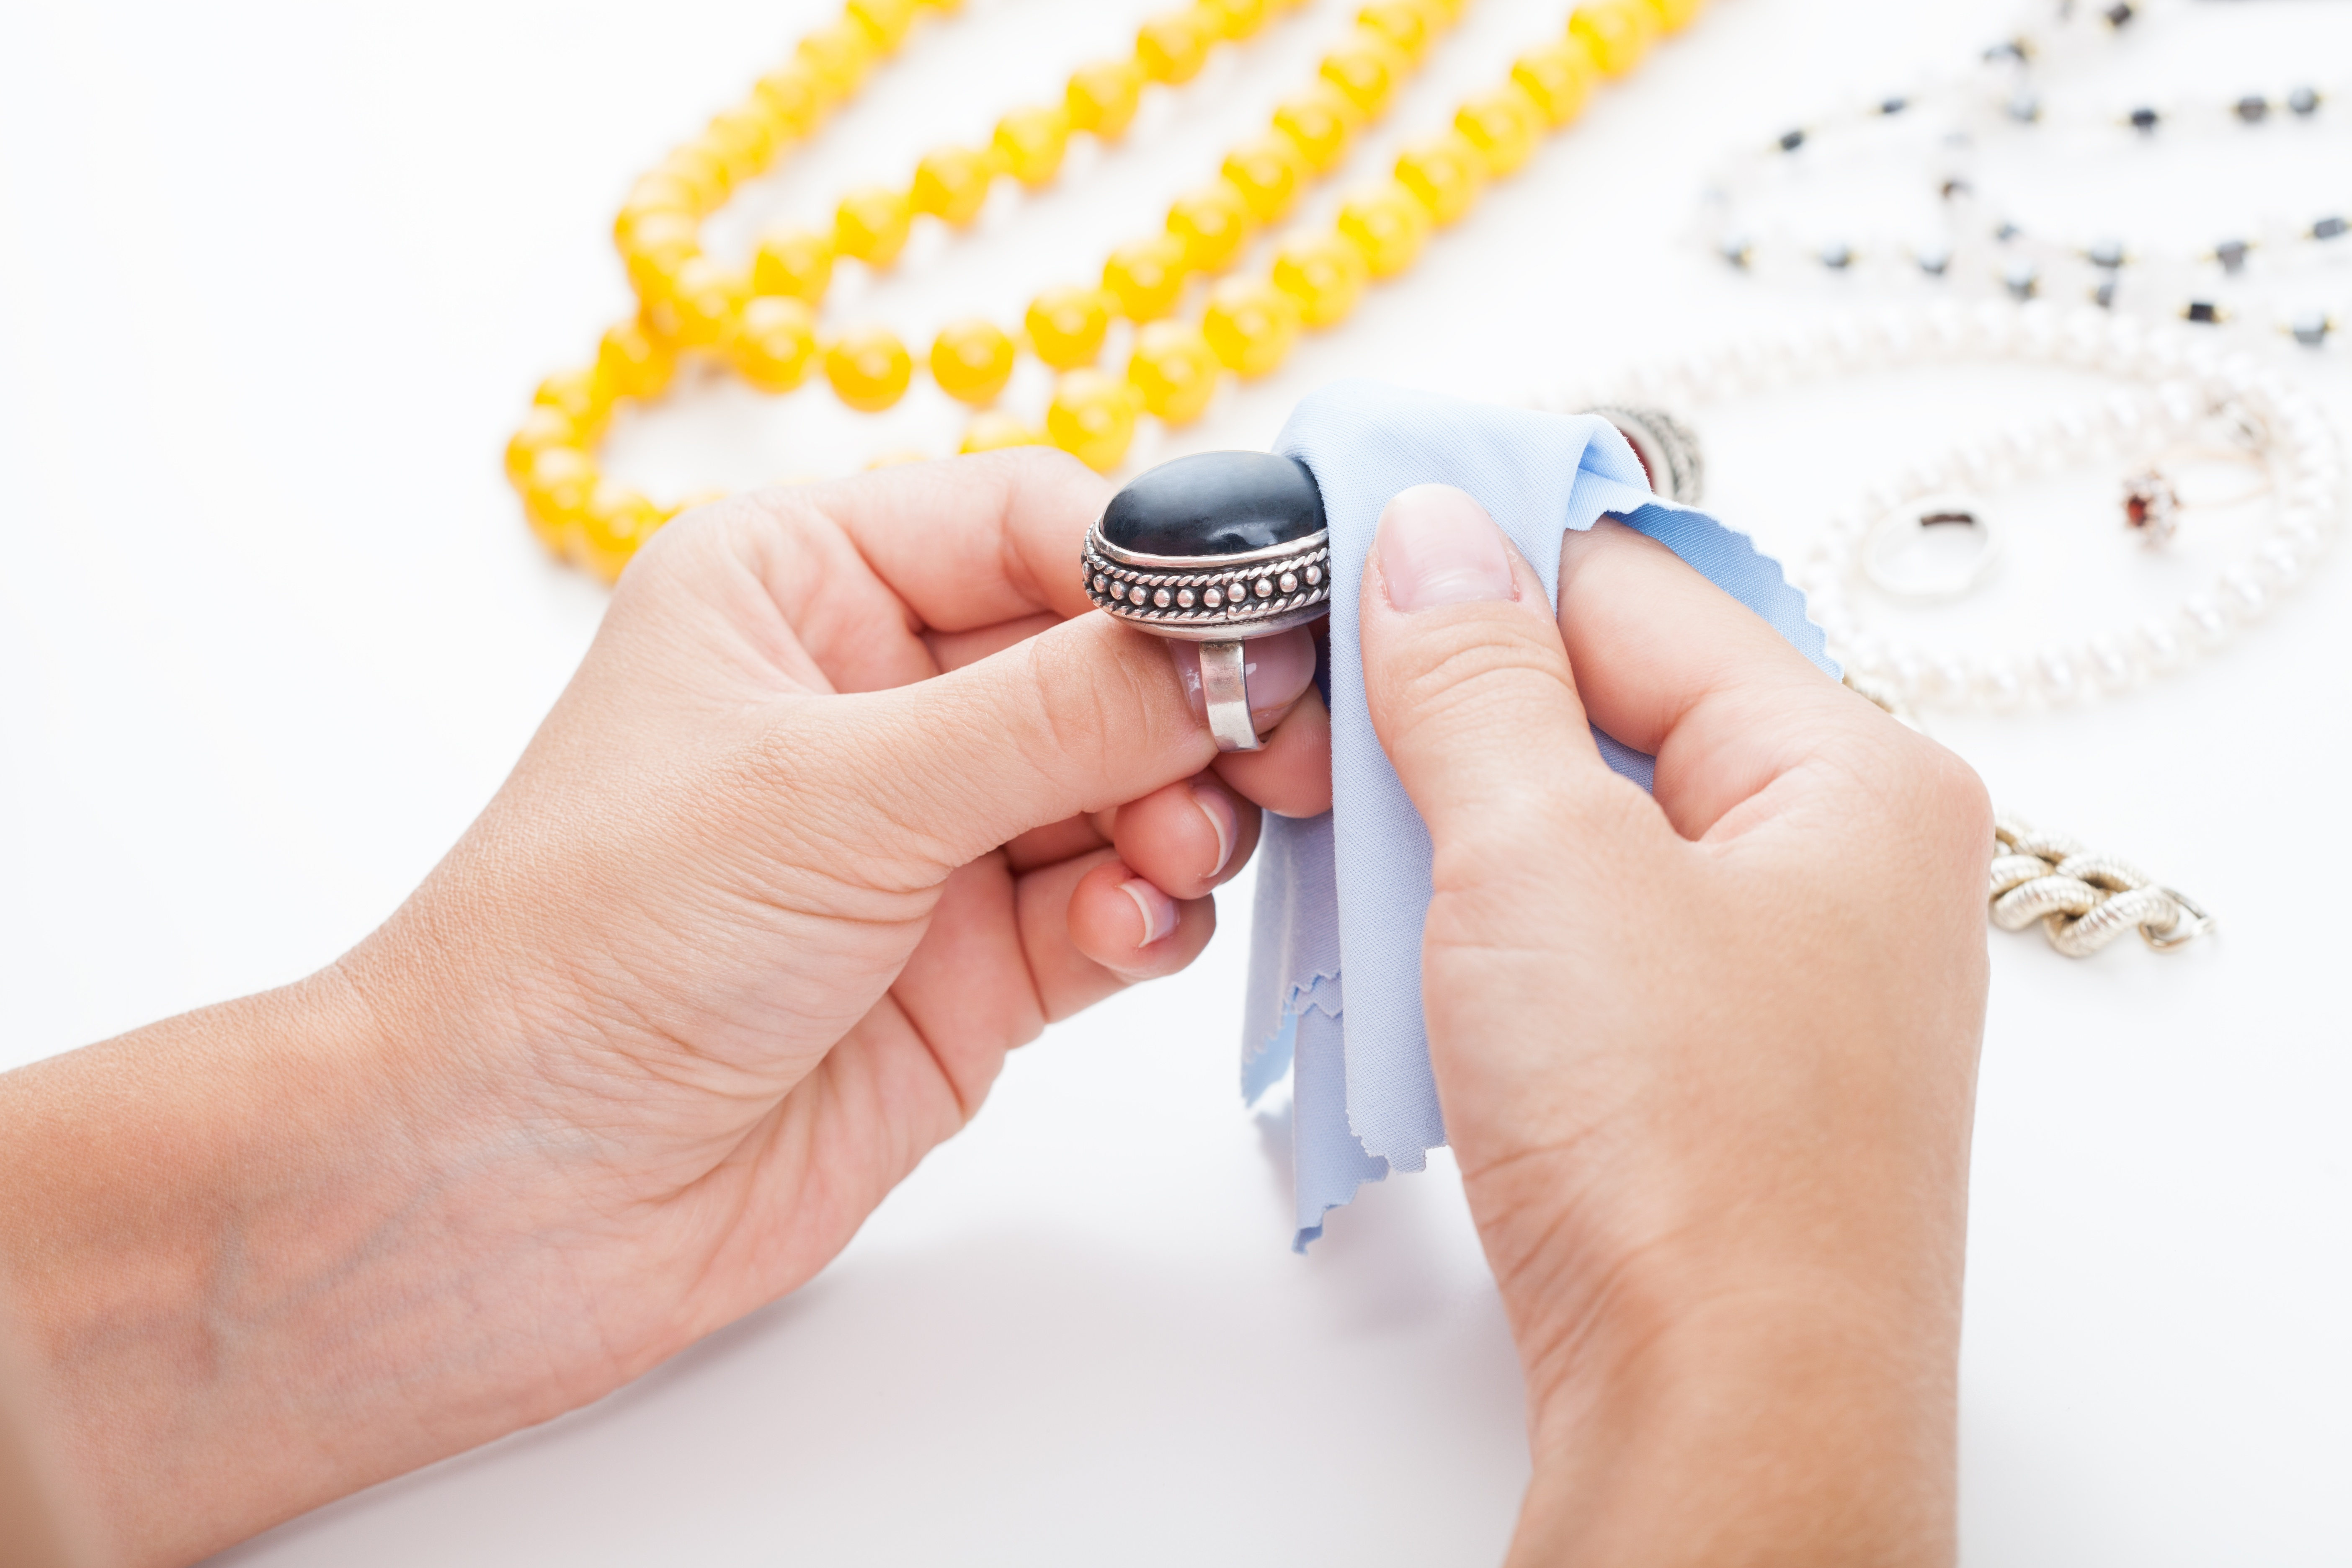 Using a Homemade Jewelry Cleaner? Avoid These 3 VIDEO